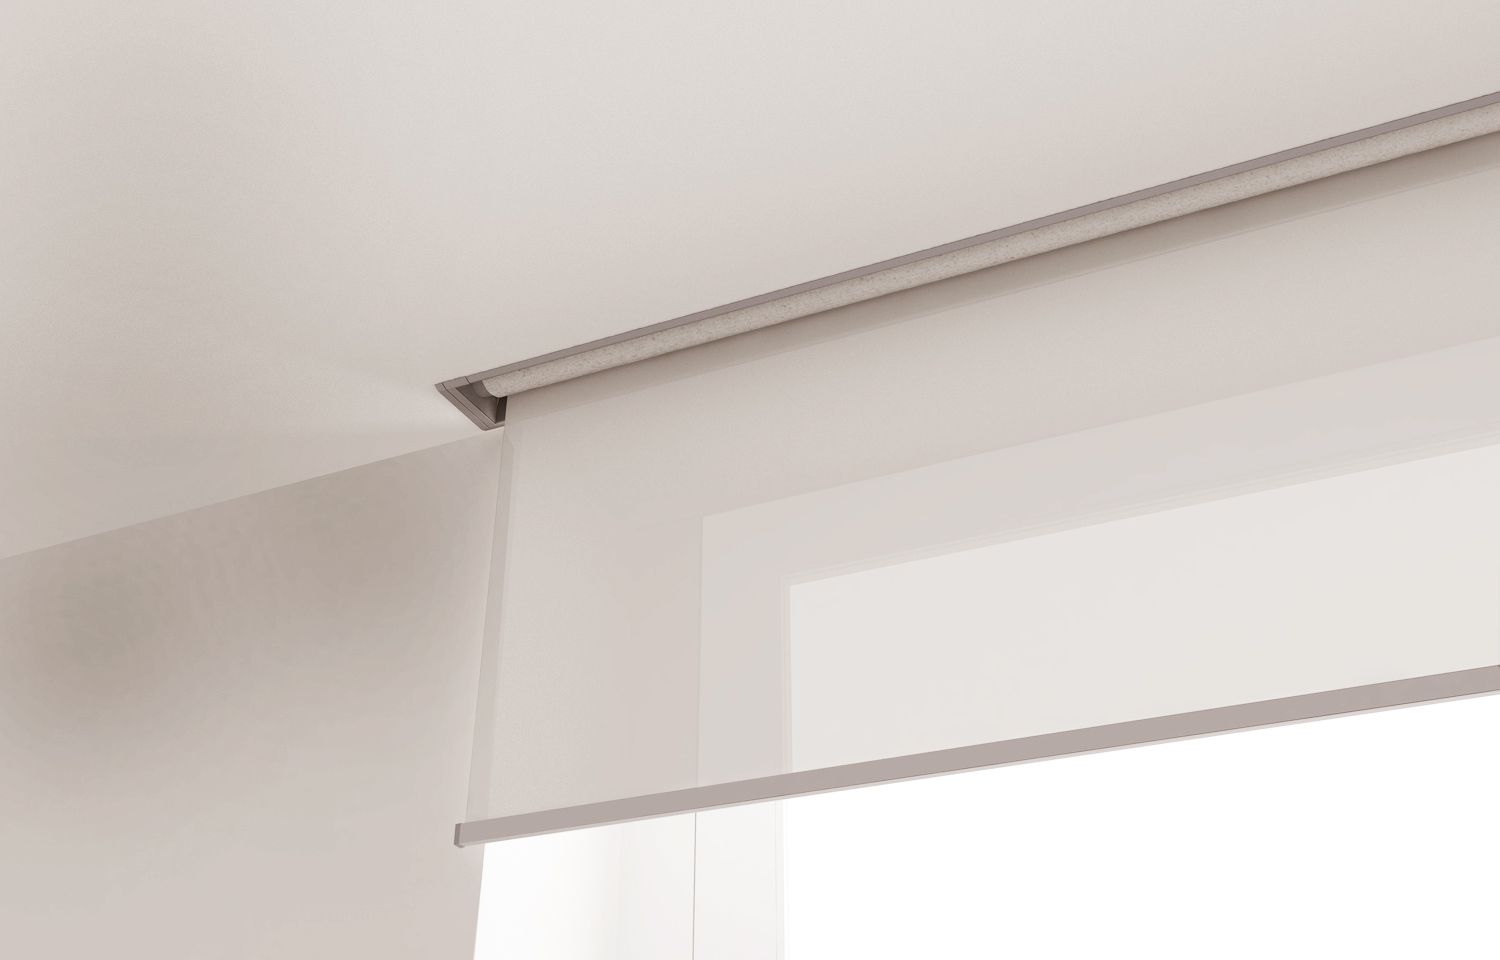 Recessed Roller Or Solar Shades Are A Great Option For Business